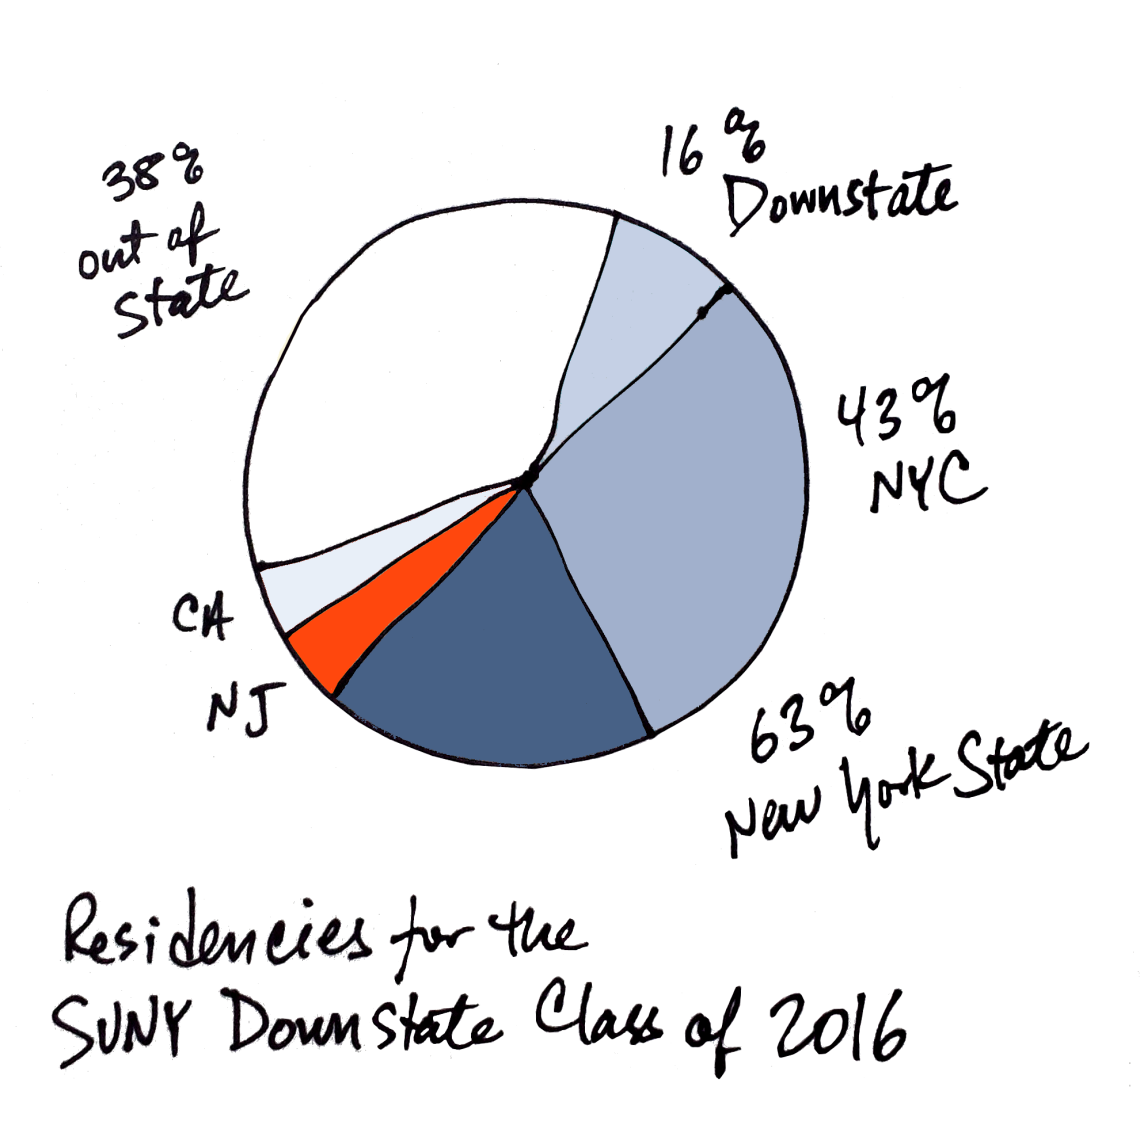 Residencies Start for Downstate's Class of 2016 – SUNY